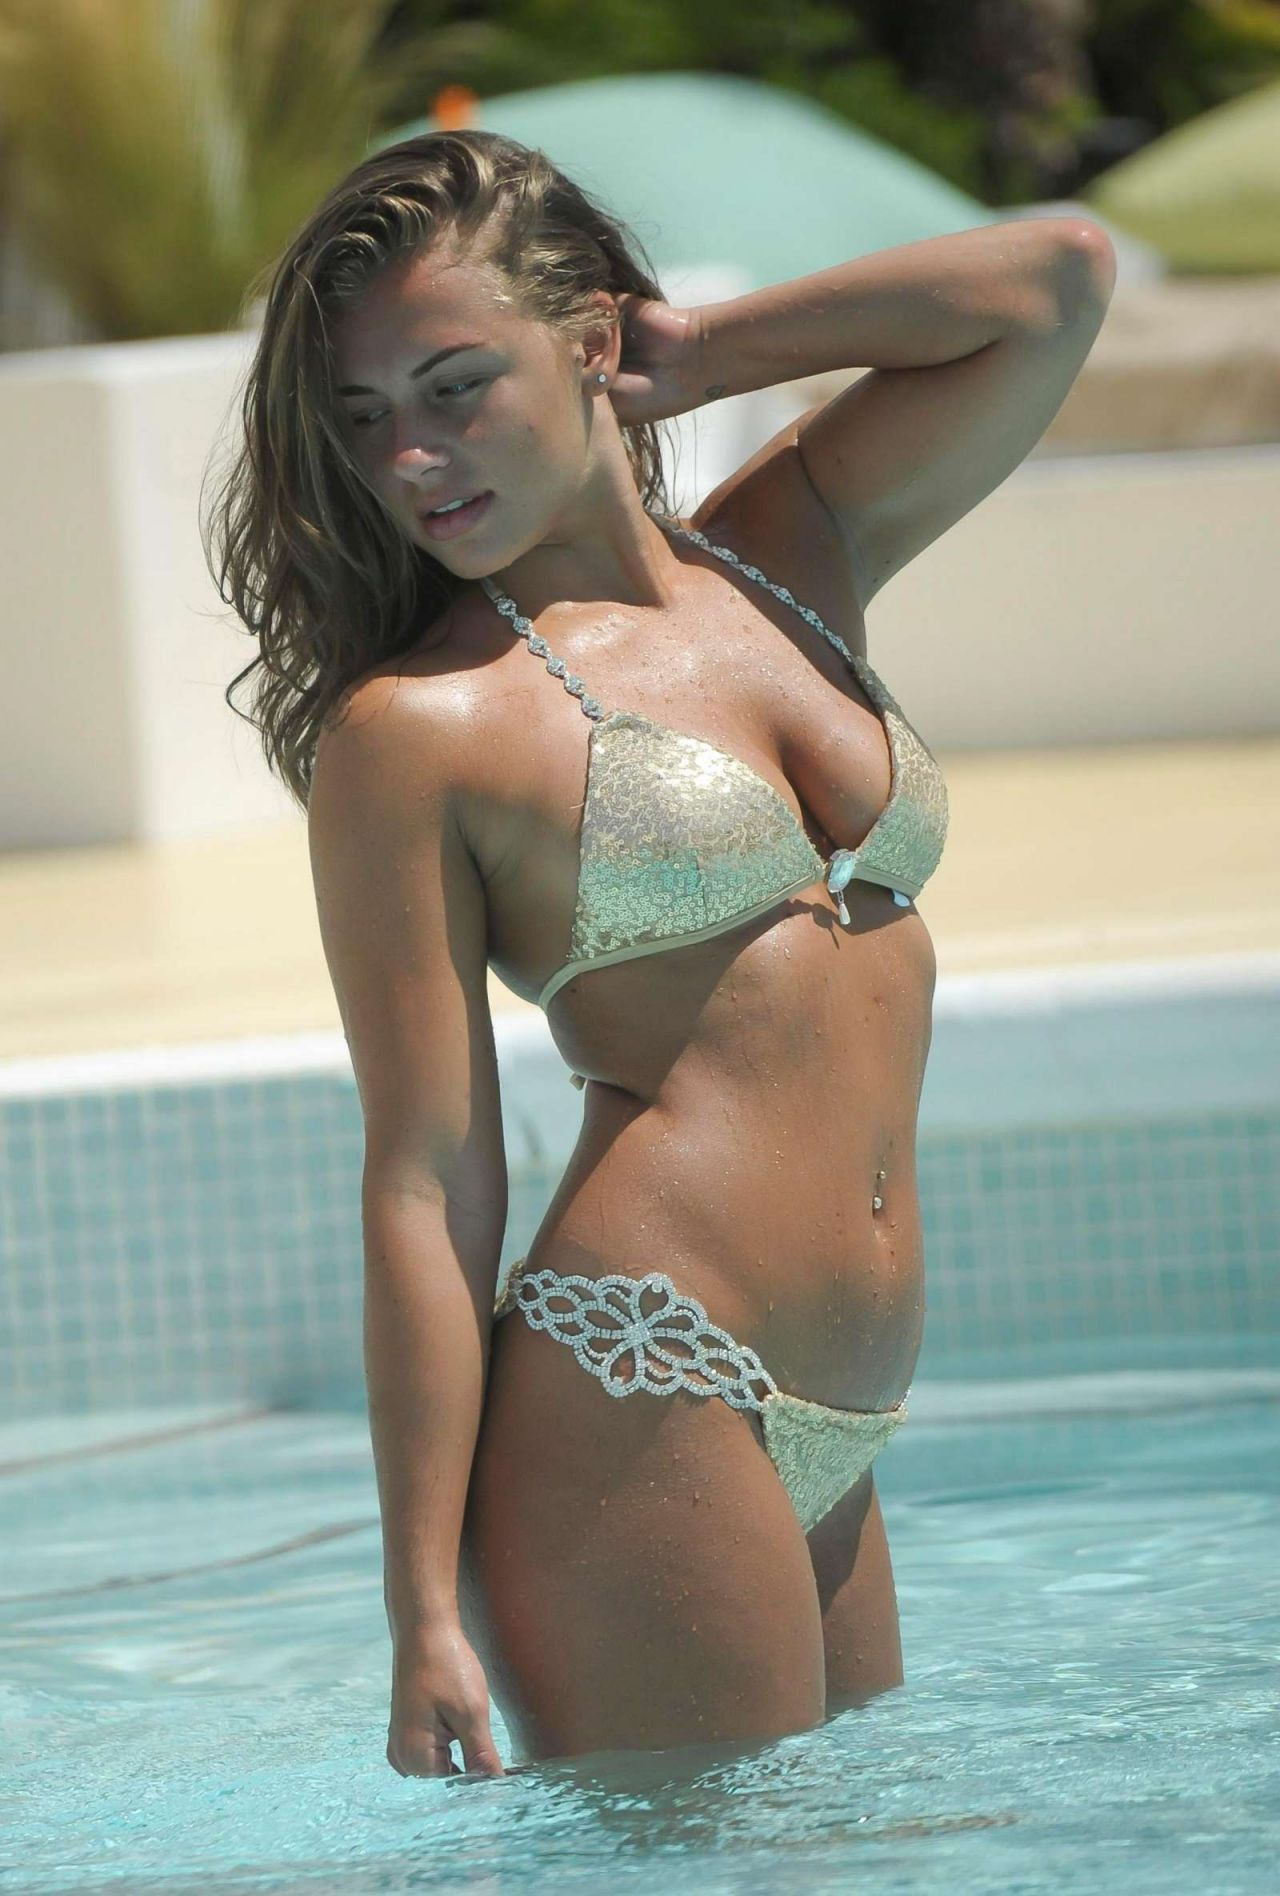 Ashleigh Defty nudes (51 foto and video), Topless, Is a cute, Boobs, butt 2020